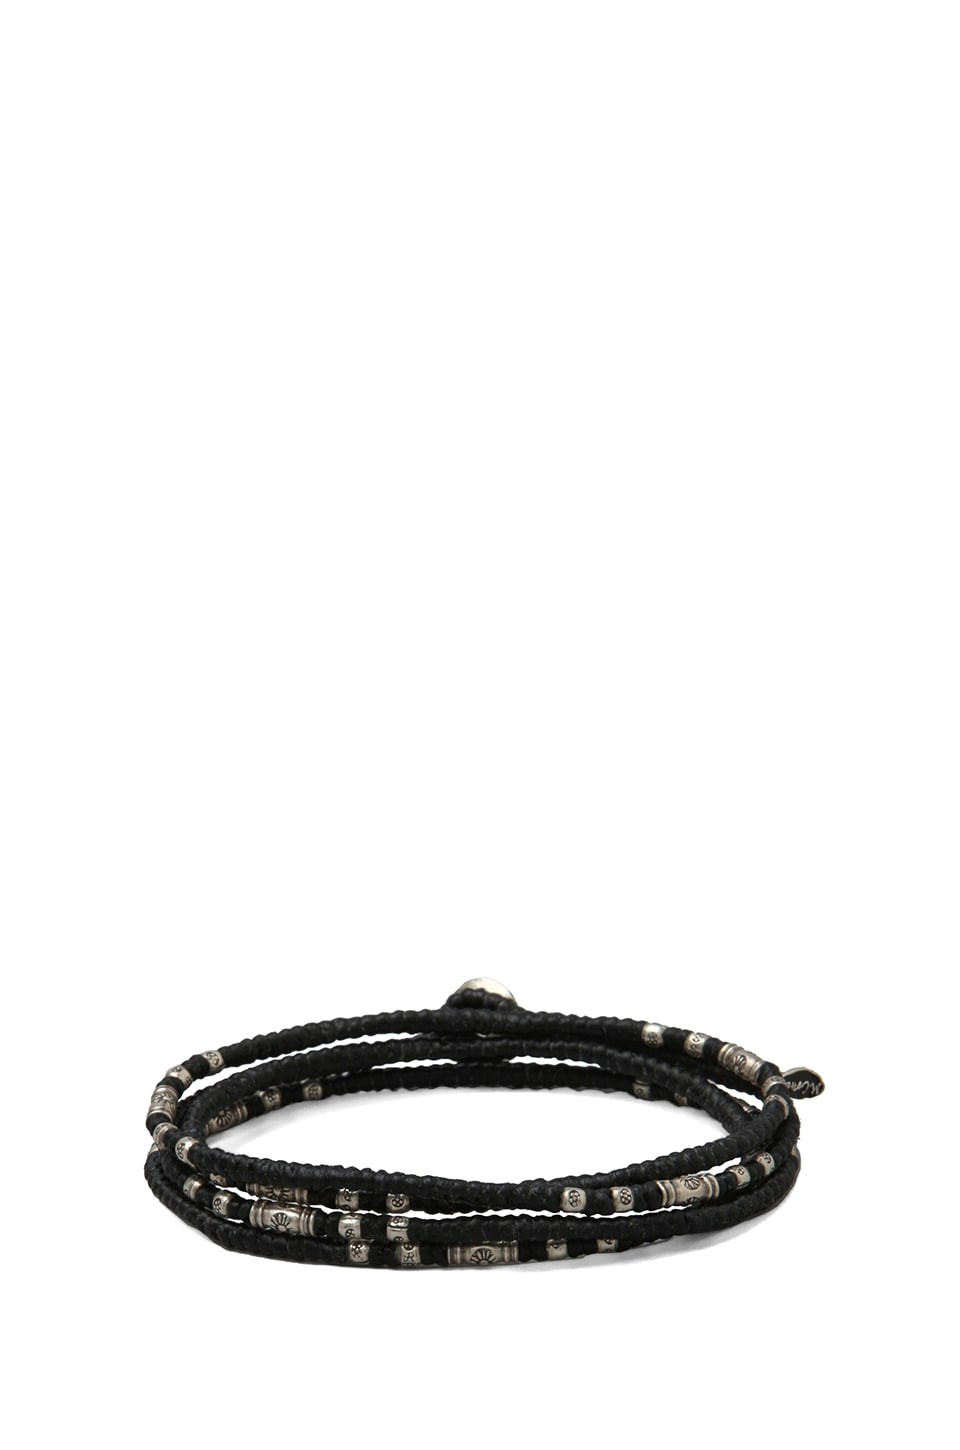 M.Cohen 4 Wrap Knotted Sterling Sliver Bracelet in Black